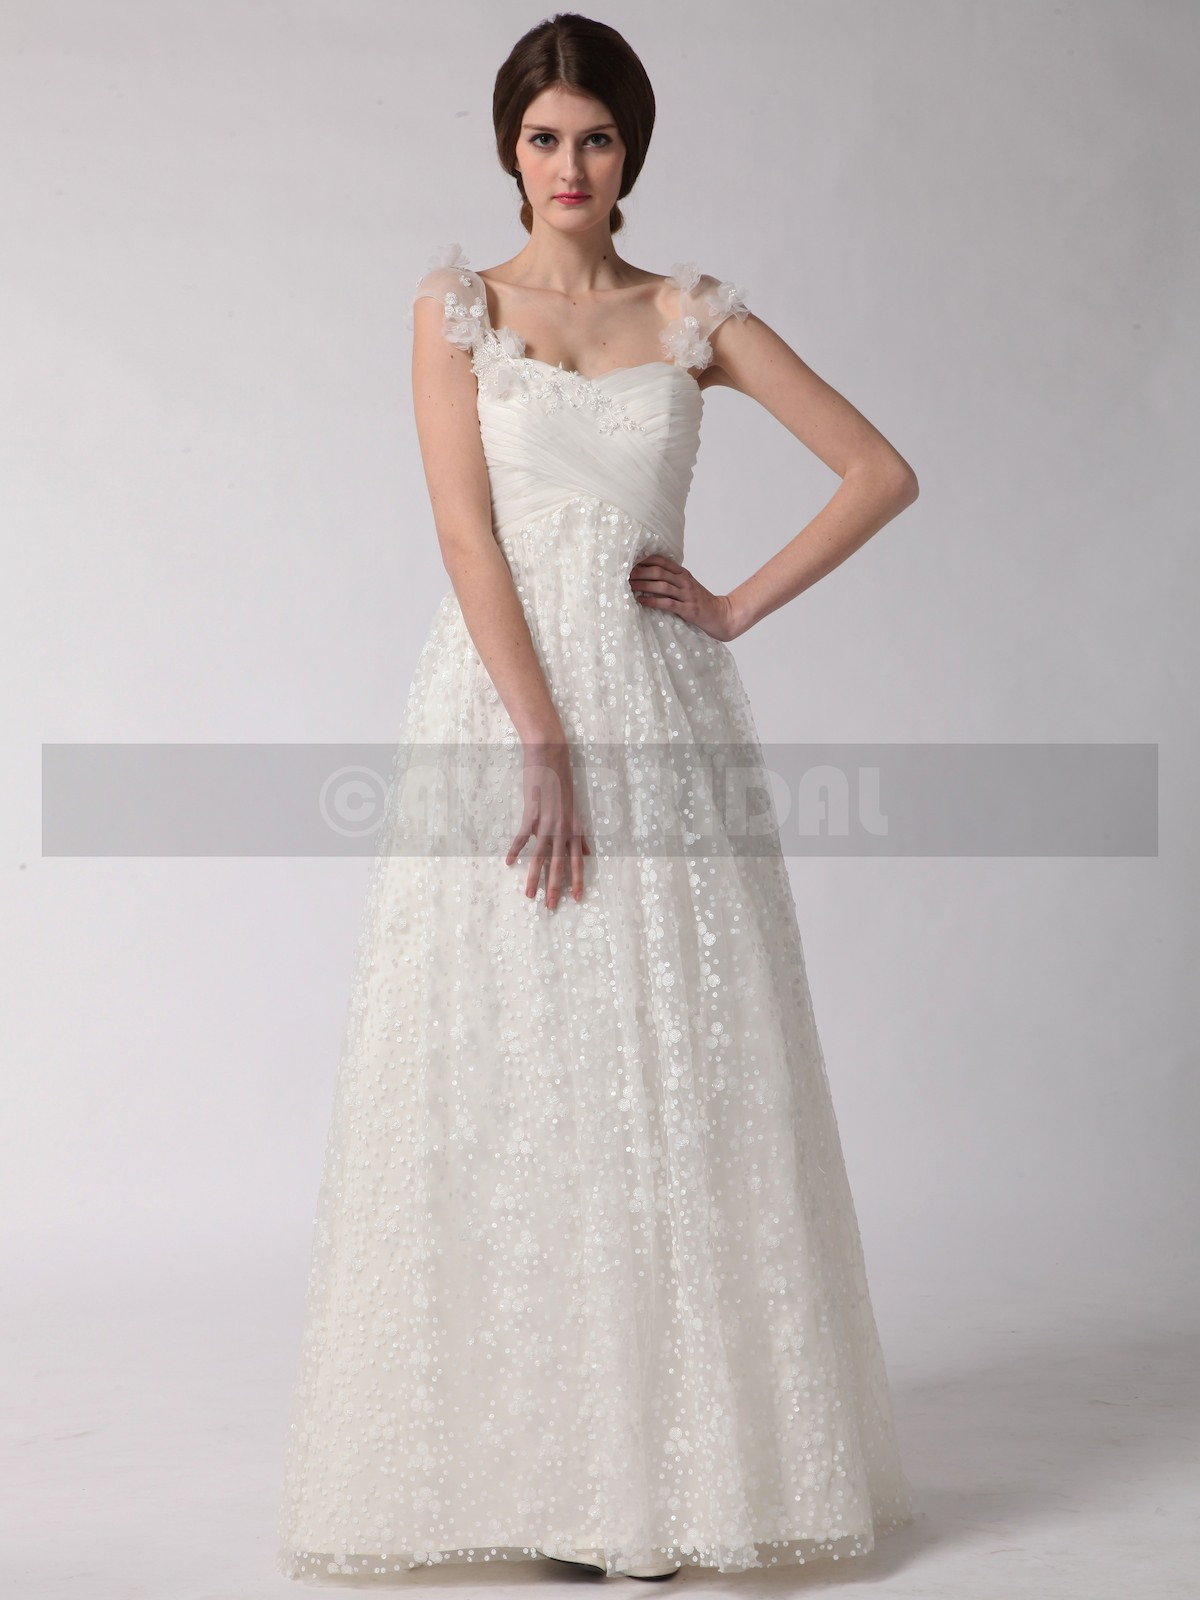 Lace Wedding Dress - Rosemary - Front